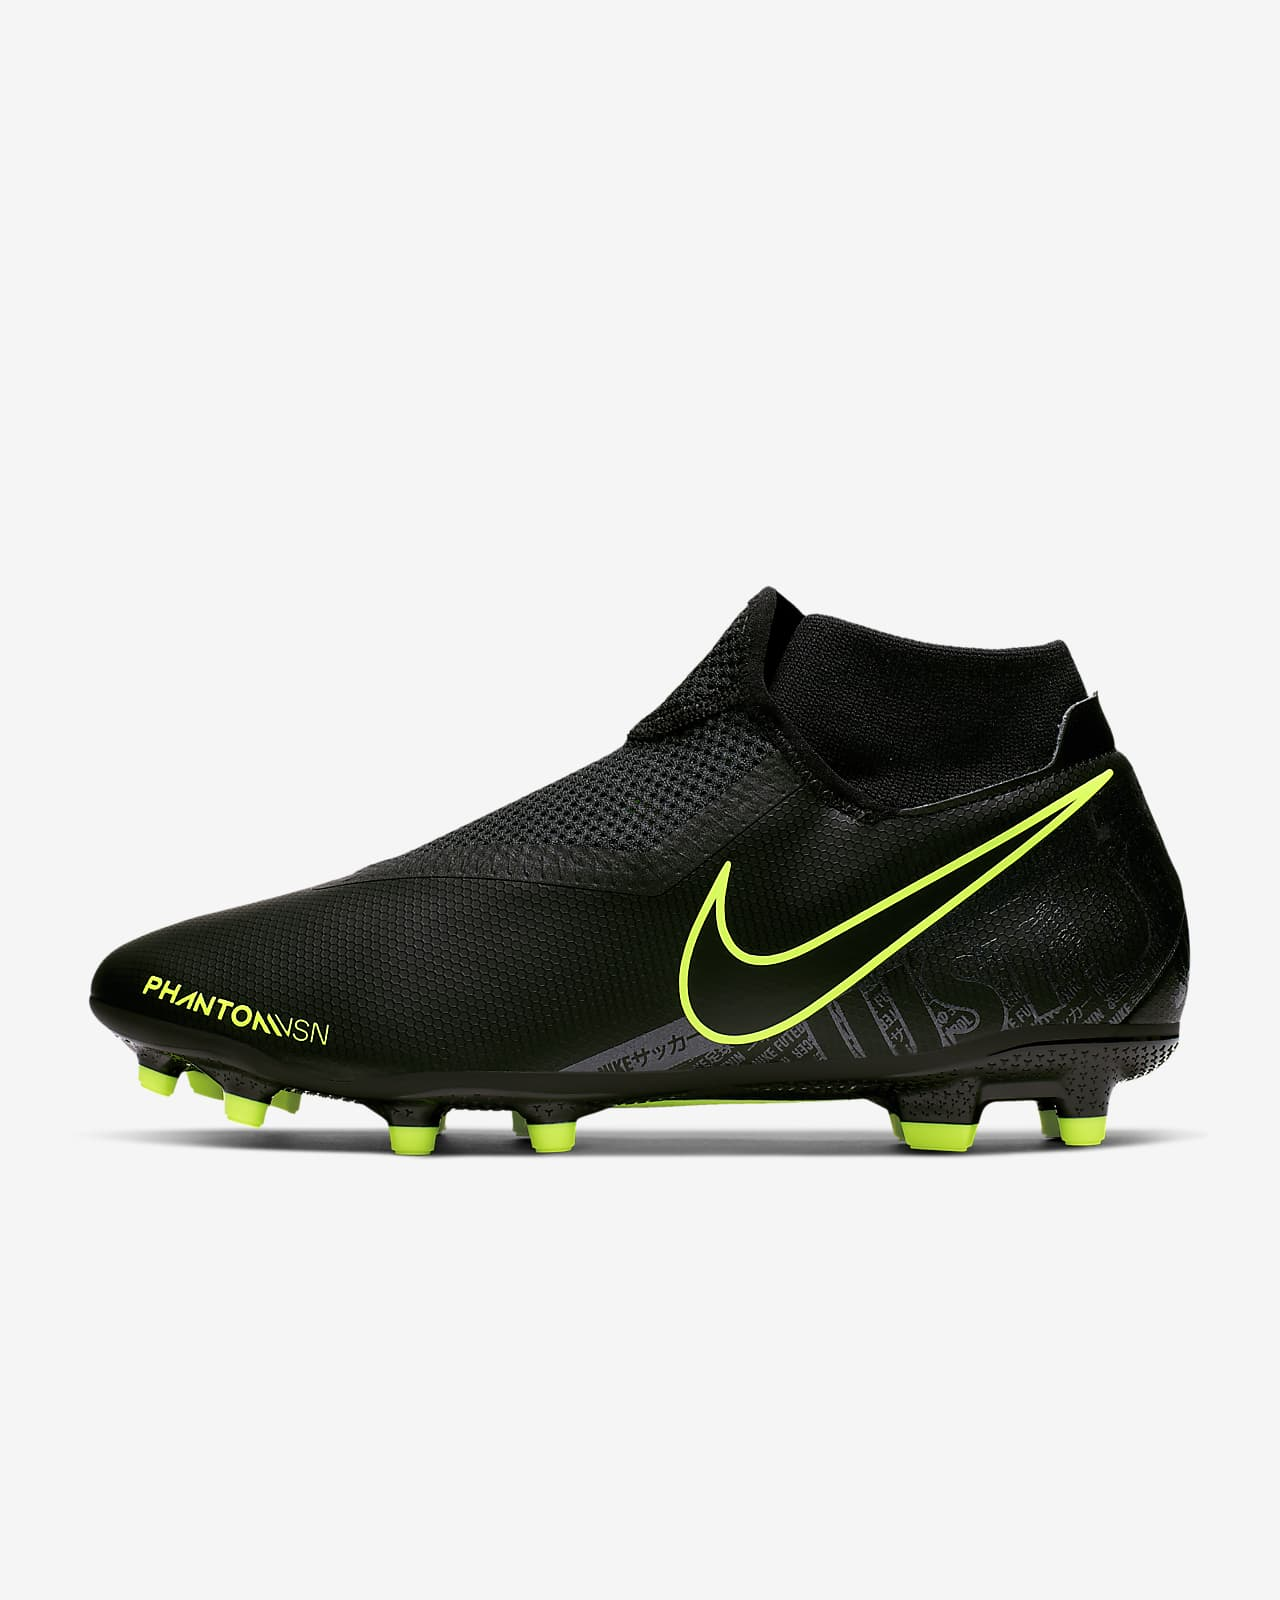 camión Interpretación étnico  Nike Phantom Vision Academy Dynamic Fit MG Multi-Ground Soccer Cleat. Nike .com